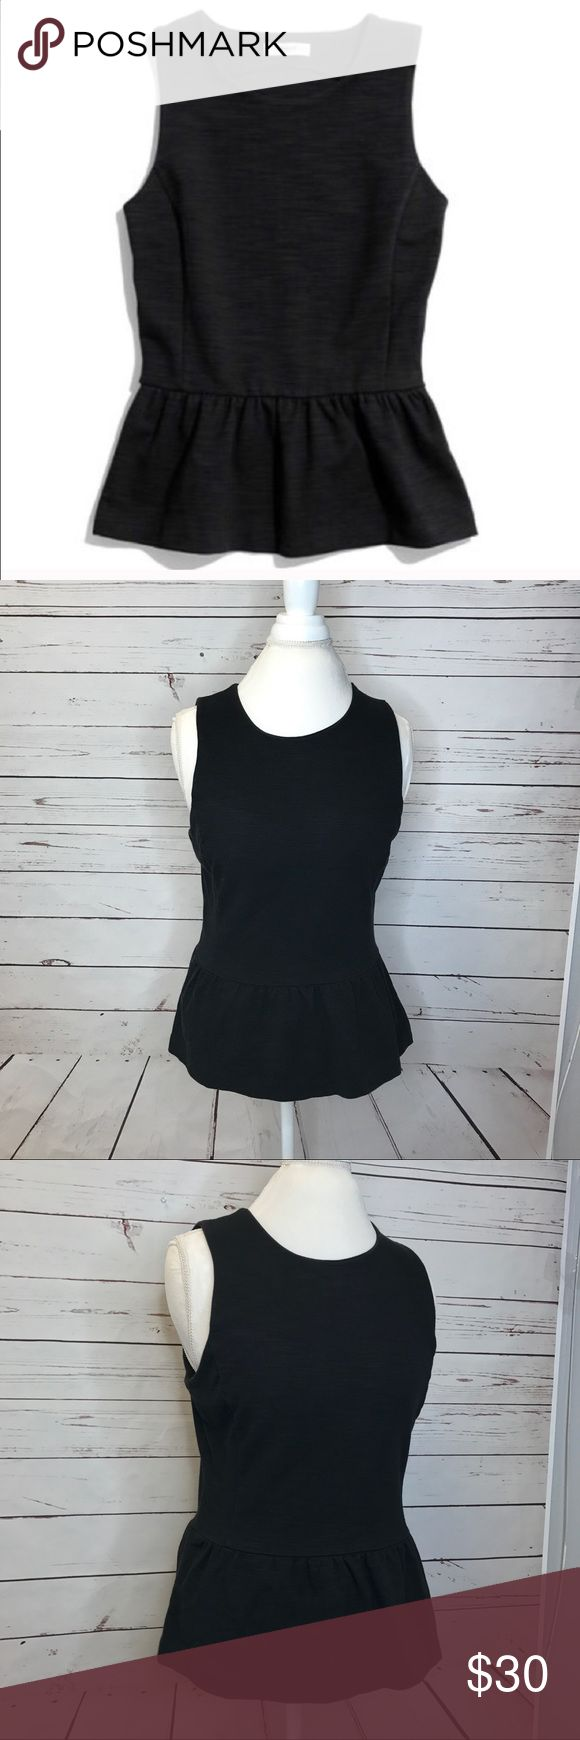 Madewell Black Peplum Top Super cute and comfy Madewell black peplum top with side zipper. Kept in a smoke and pet free environment. Runs true to size. Fabric has some stretch and is also a thicker cotton blend. Very good quality piece and a staple for every woman's wardrobe. Accepting all reasonable offers and bundles Madewell Tops Blouses